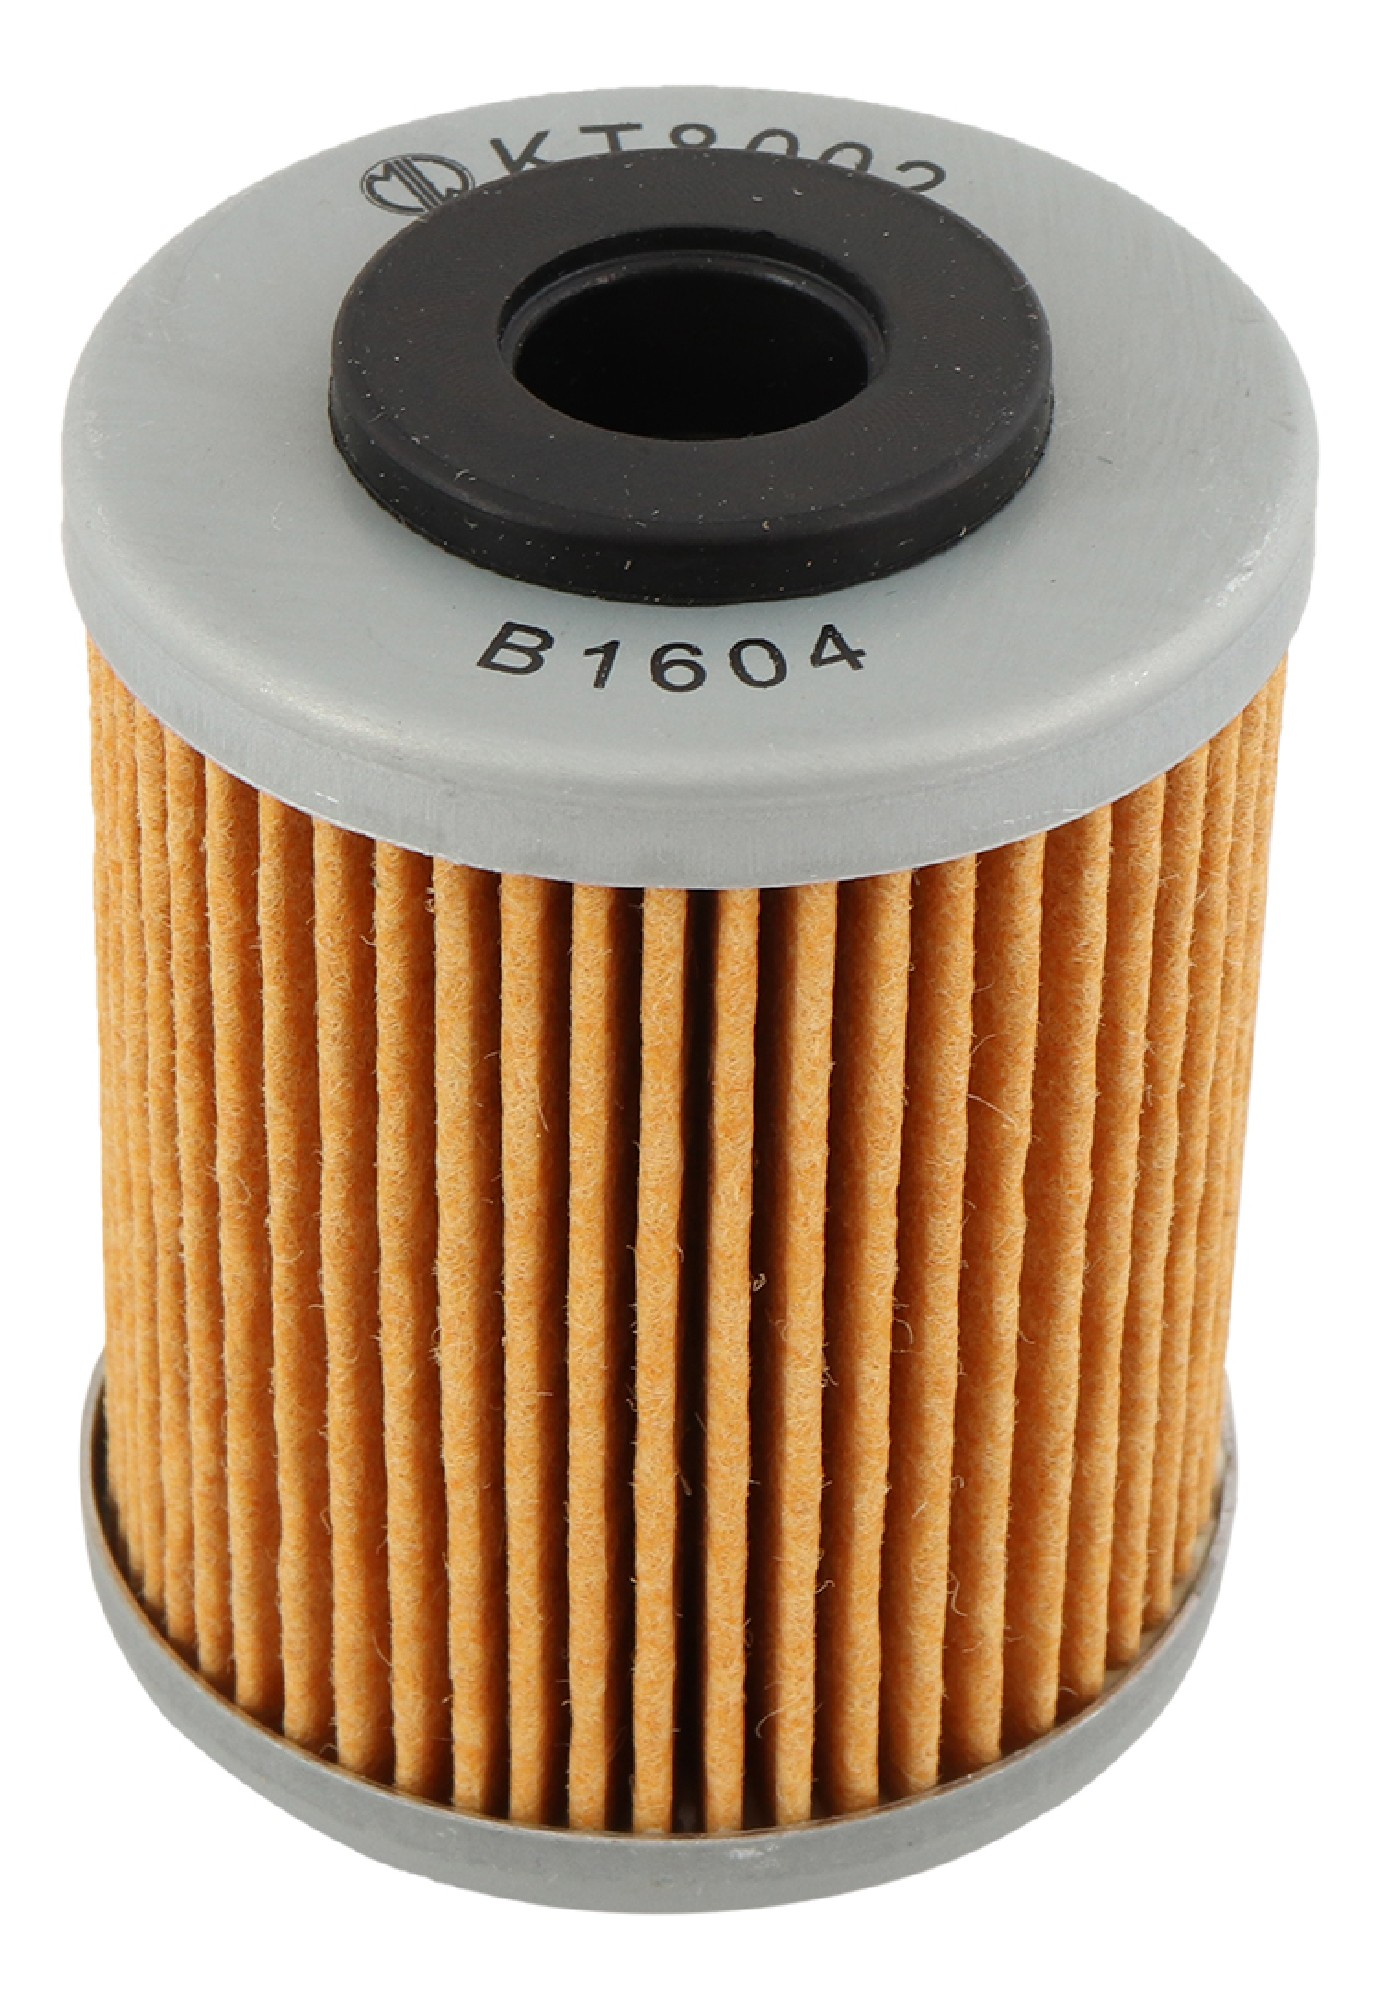 hight resolution of details about new miw oil filter for ktm 520 sx racing 00 02 525 exc 07 59038046144